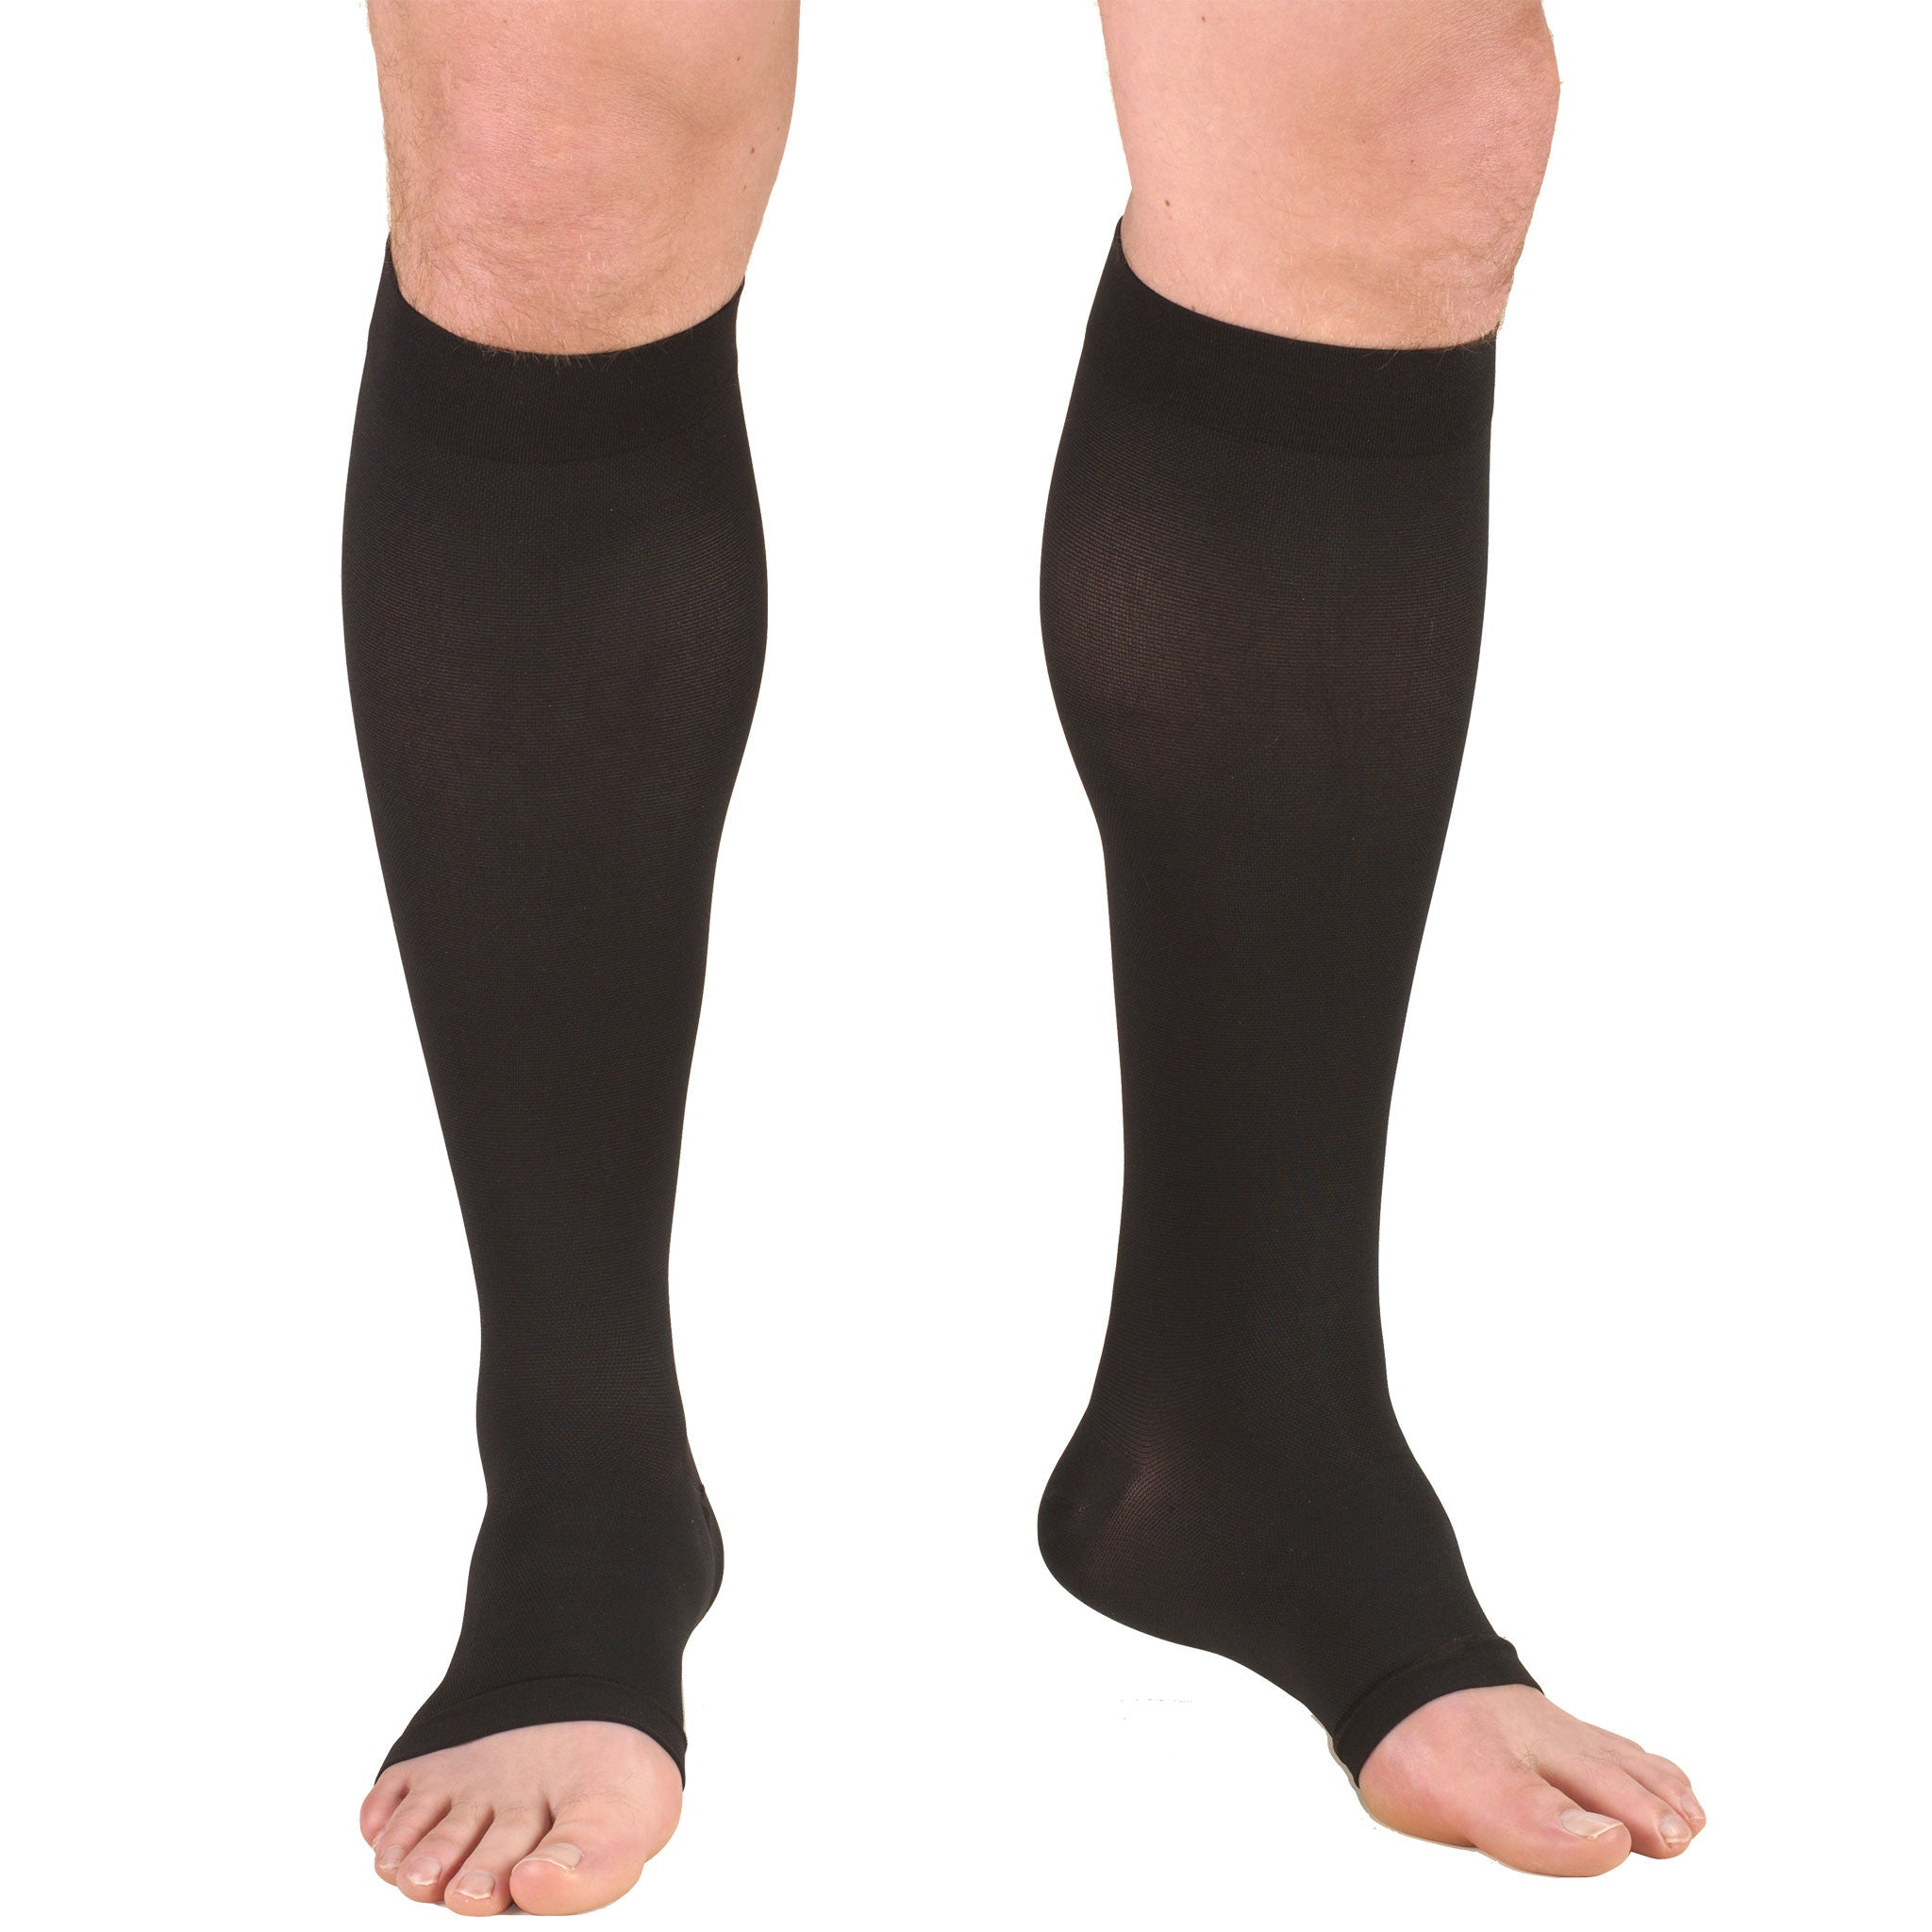 6a454bd9d3bb ... 0875 / Truform Compression Stockings / 15-20 mmHg / Knee High / Open  Toe ...